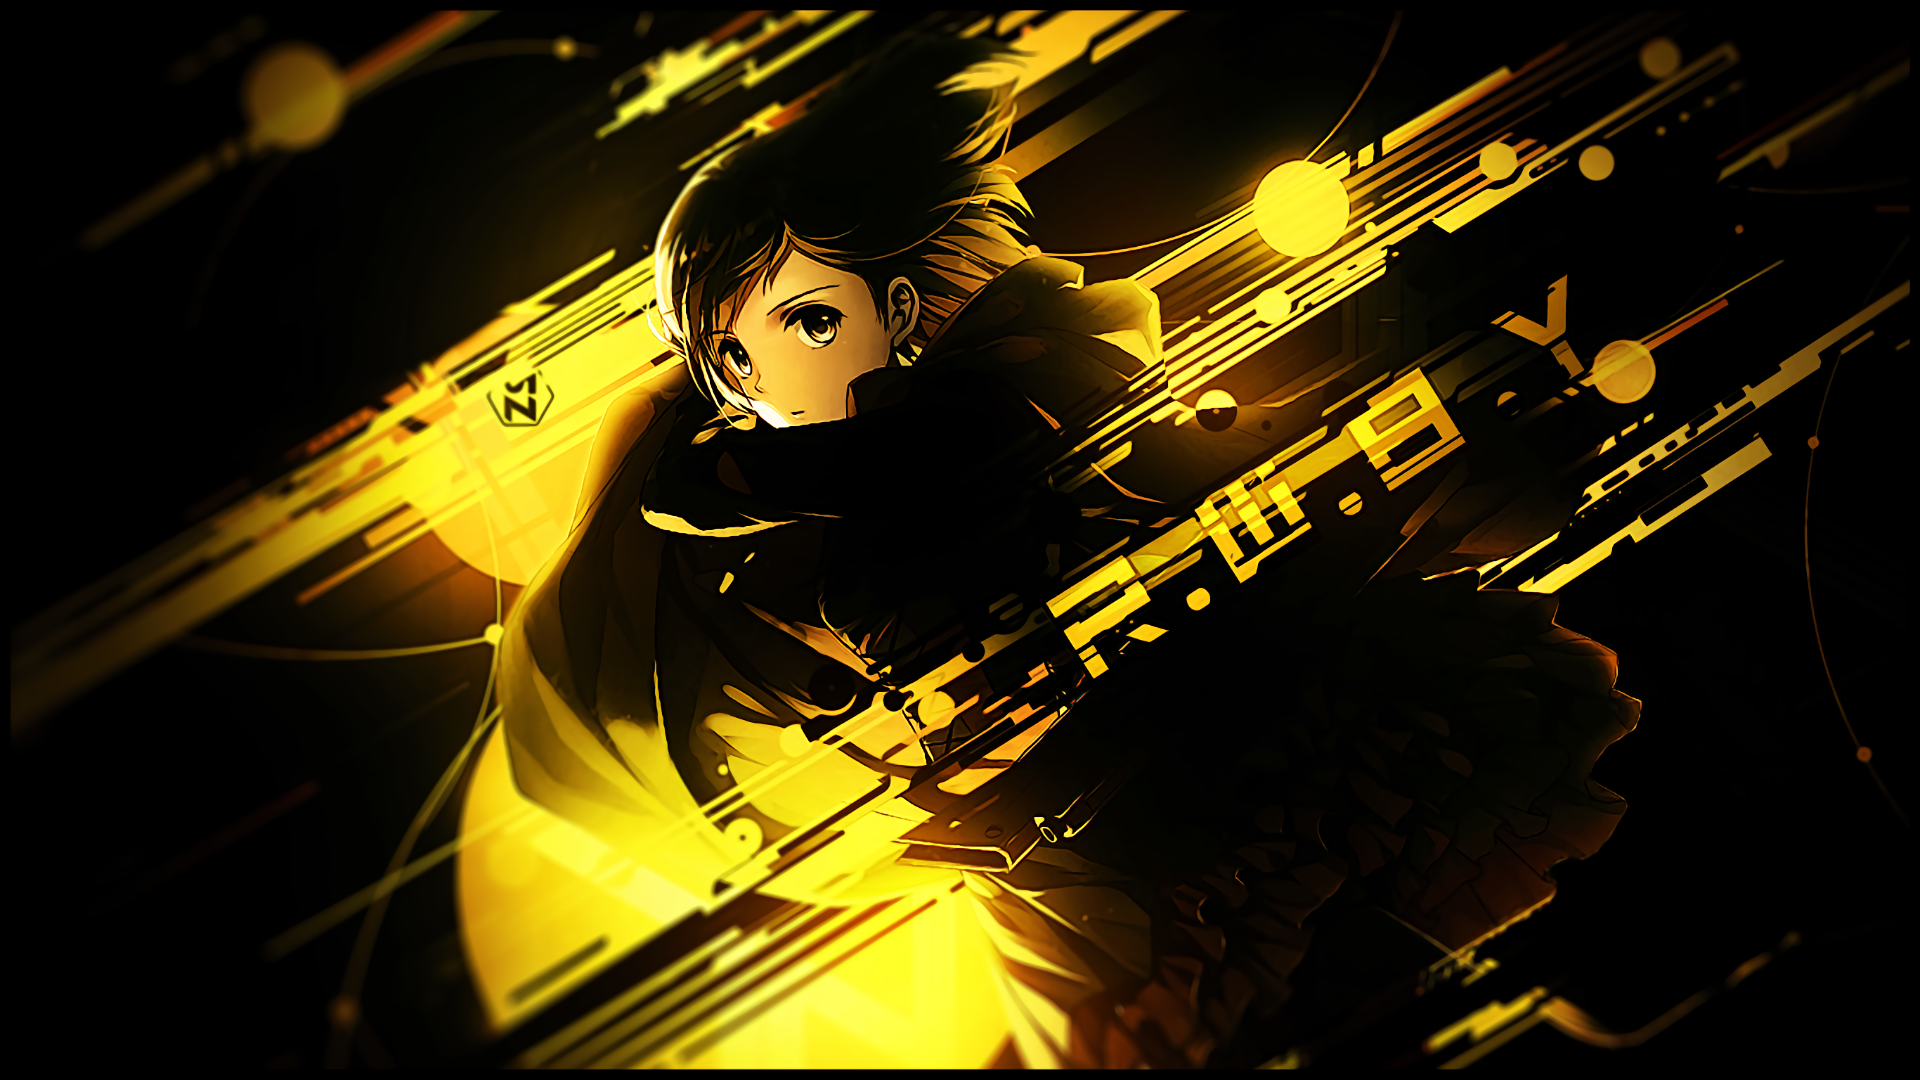 Wallpapers ID:713051